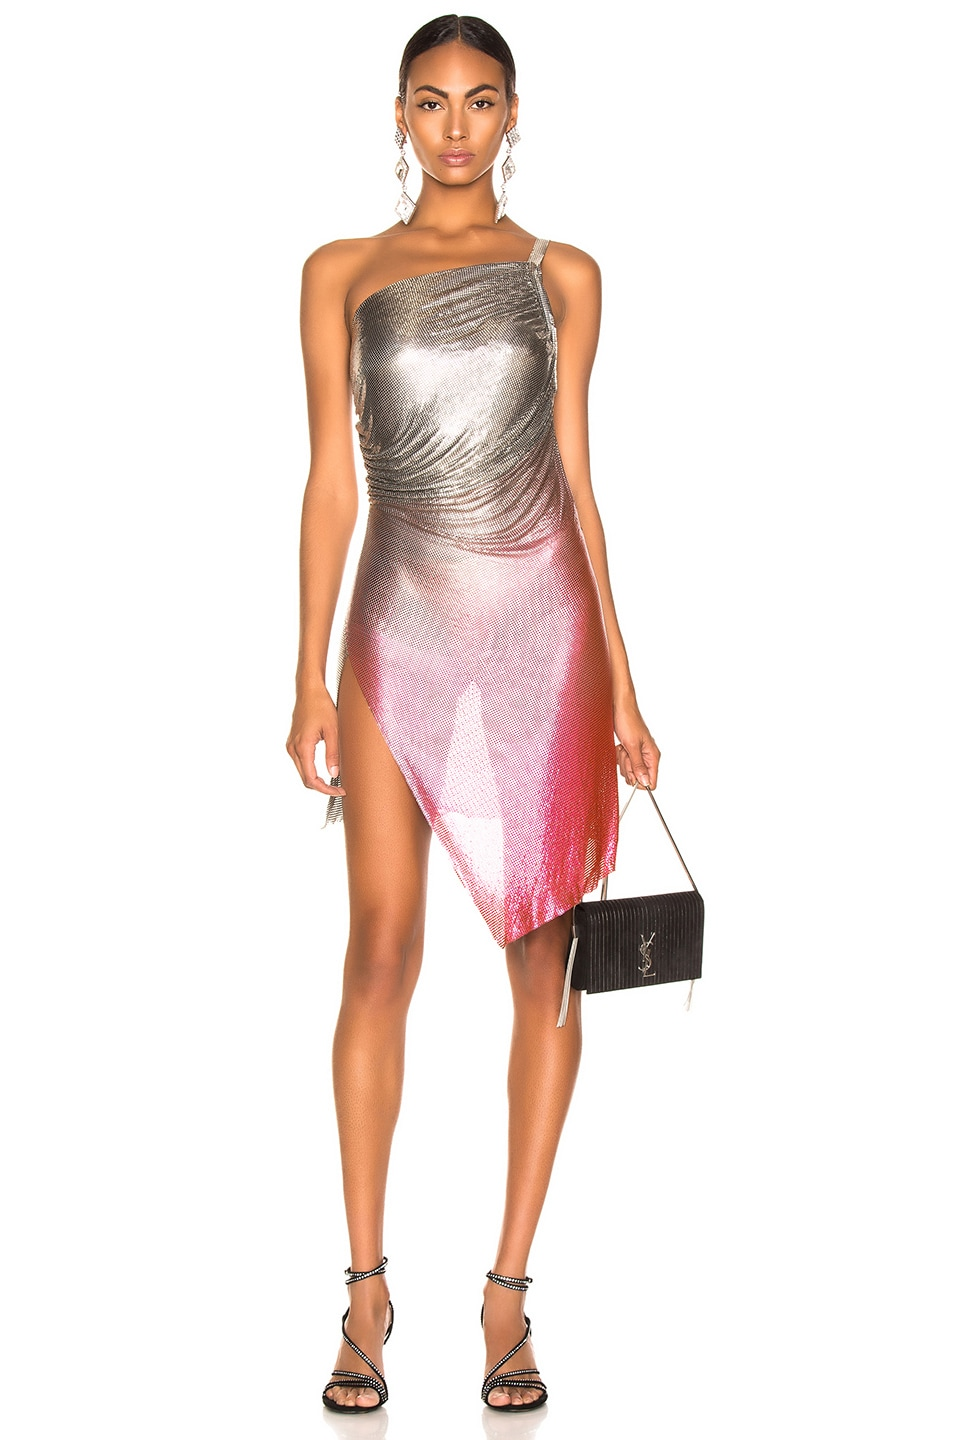 Image 1 of FANNIE SCHIAVONI for FWRD Lola Dress in Silver & Pink